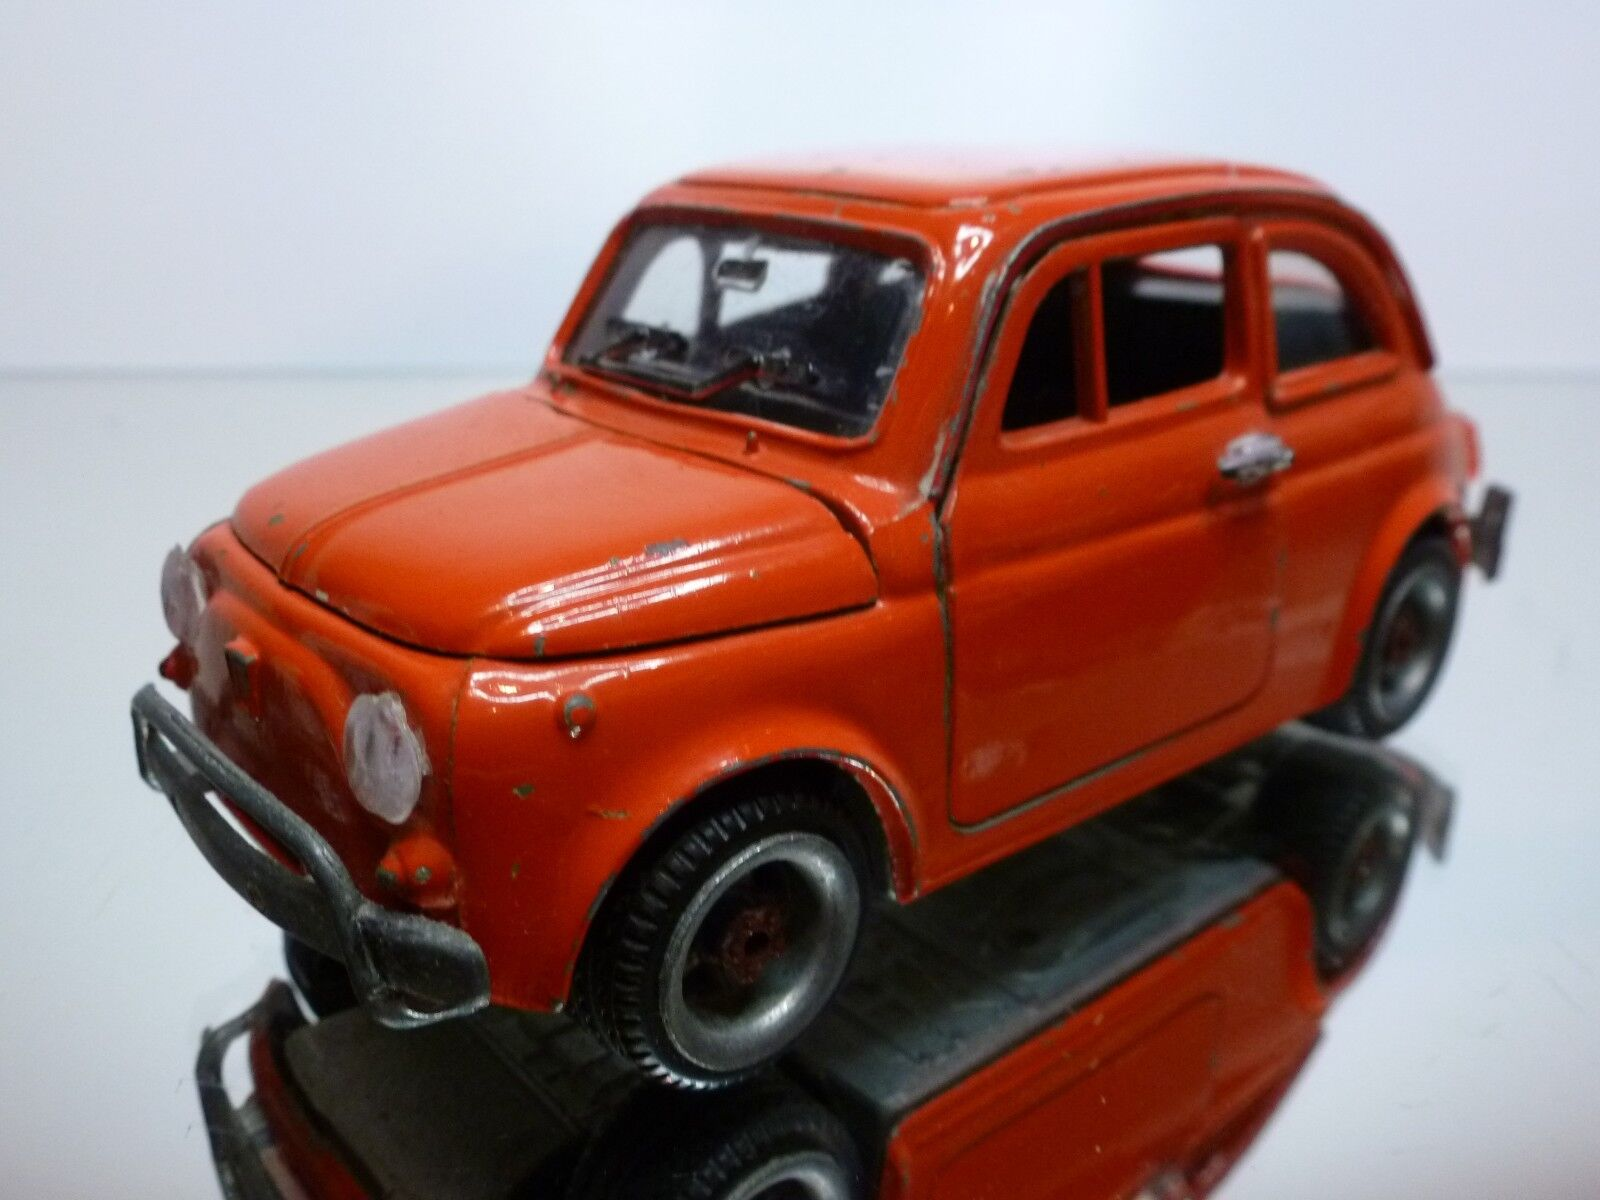 NACORAL FIAT 500 - RED 1 25 RARE - GOOD CONDITION